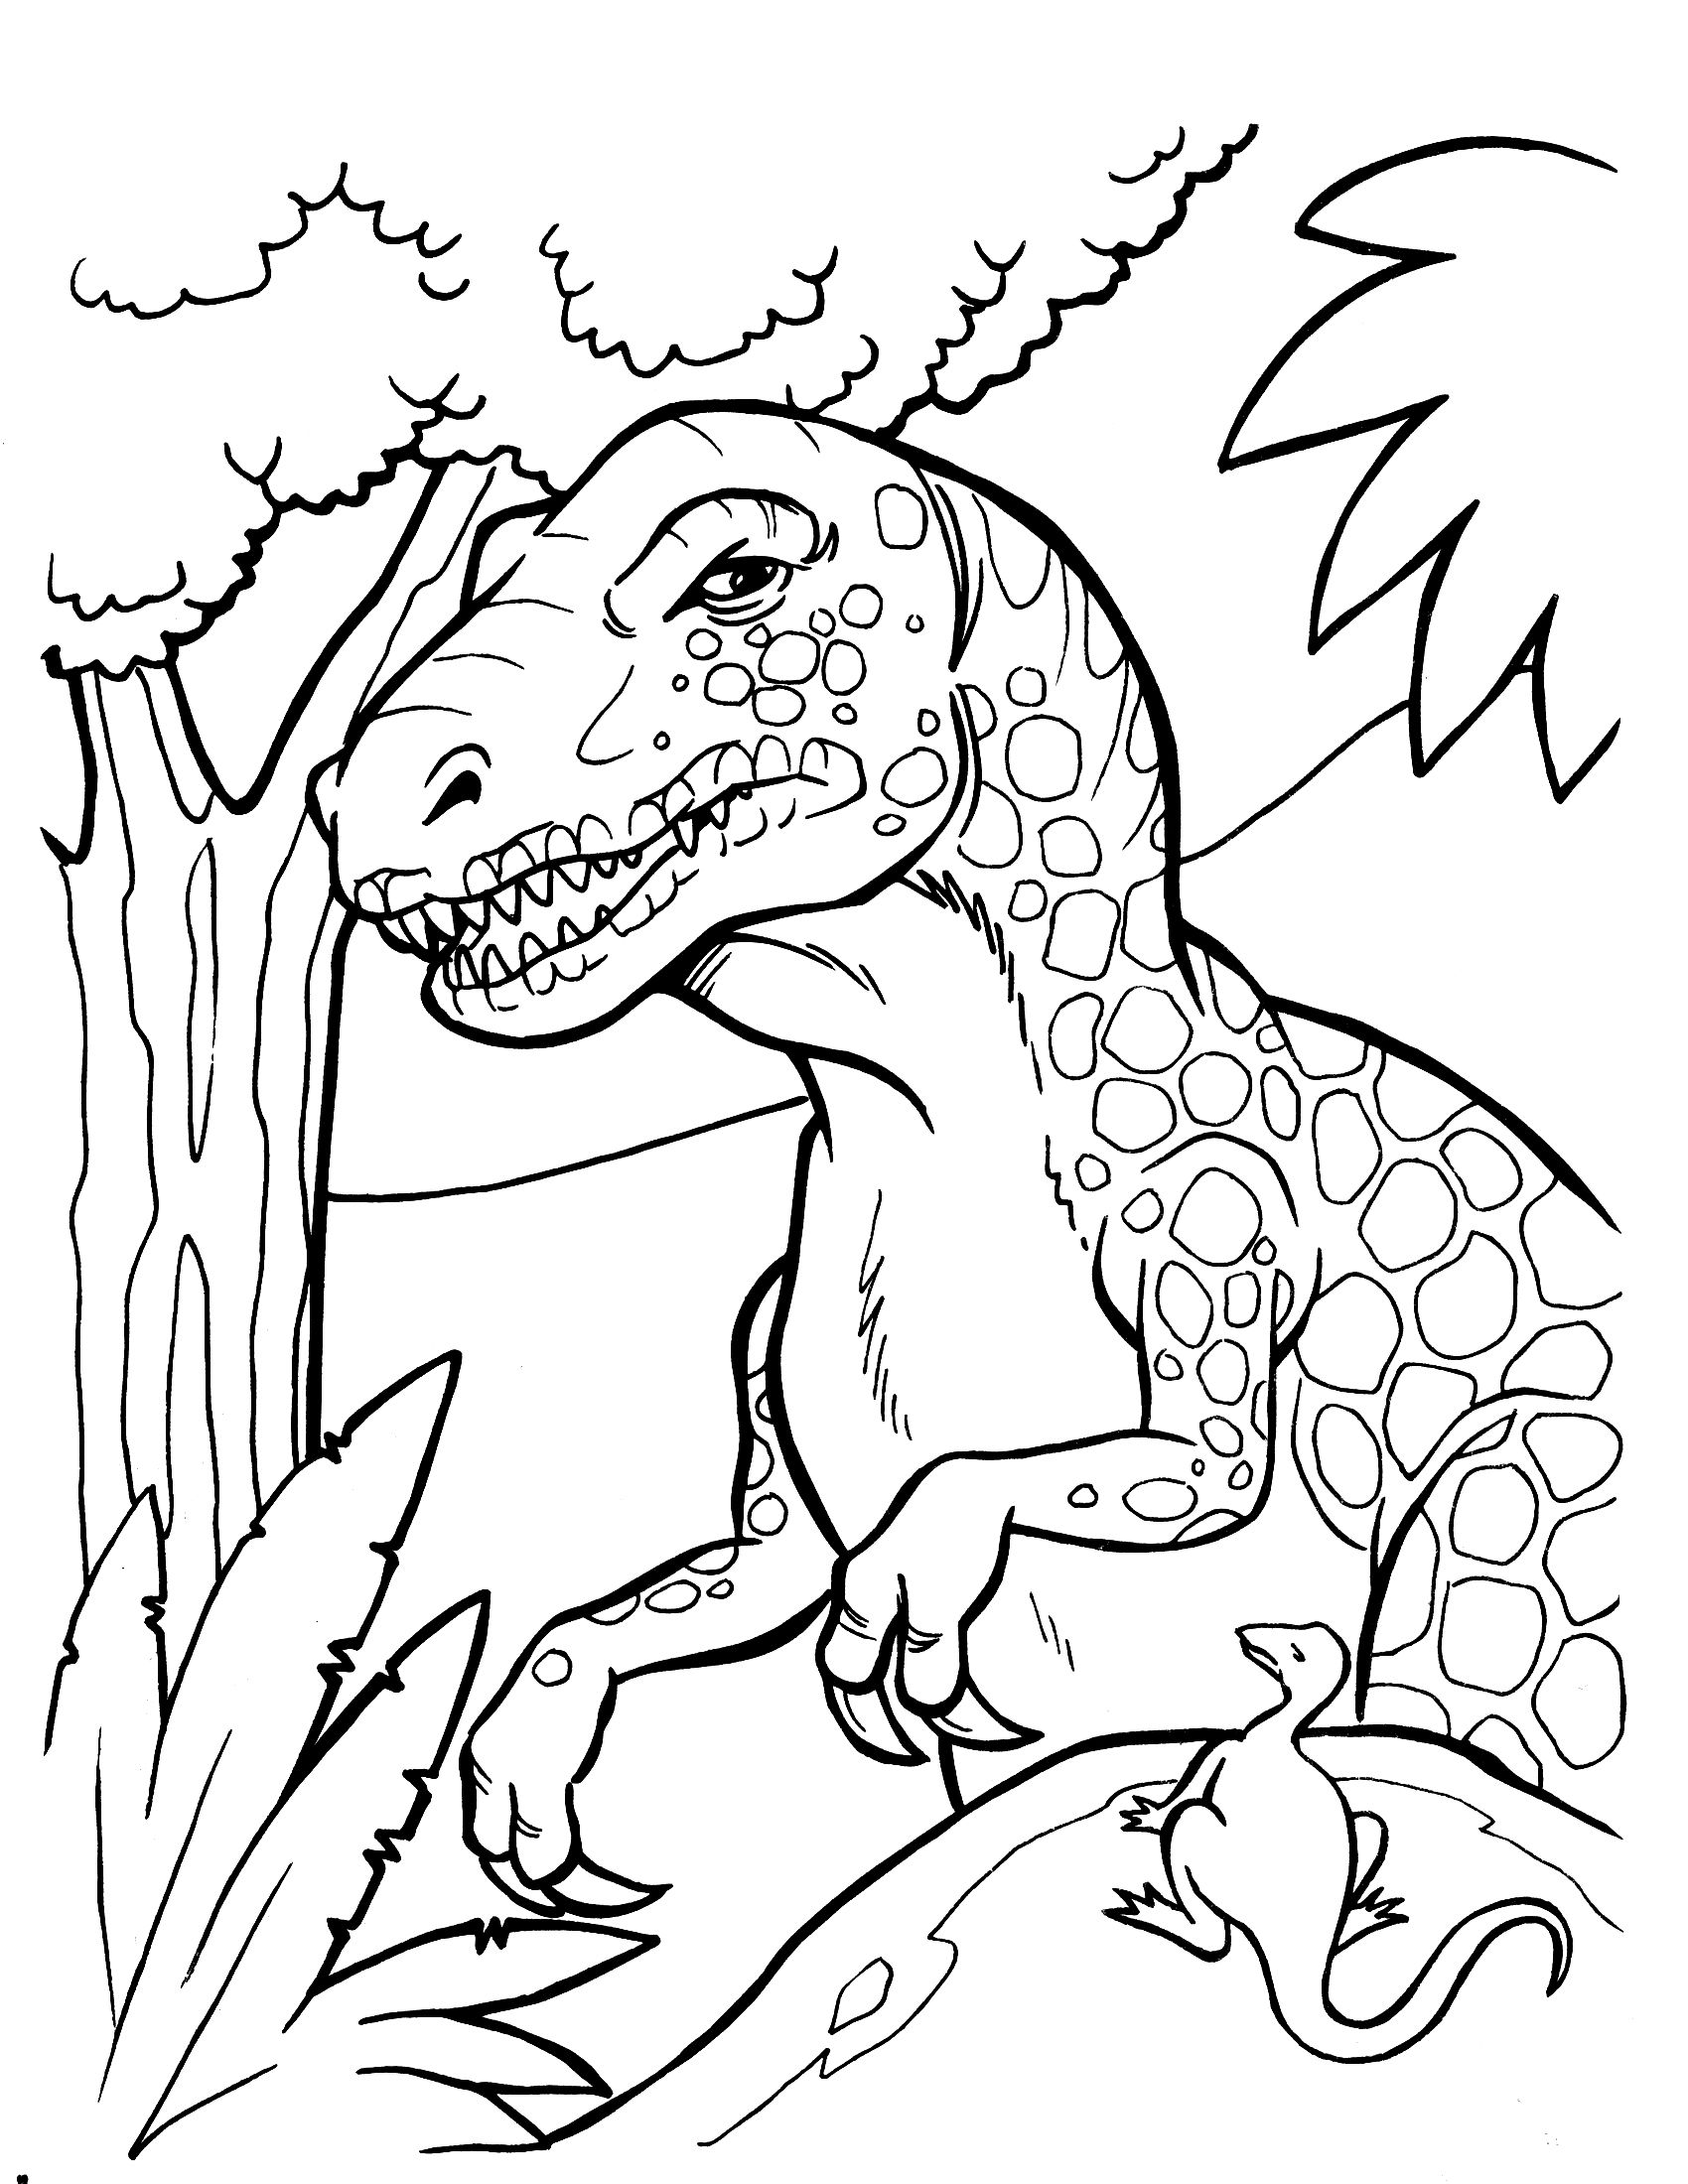 Free Printable Dinosaur Coloring Pages Dinosaur coloring